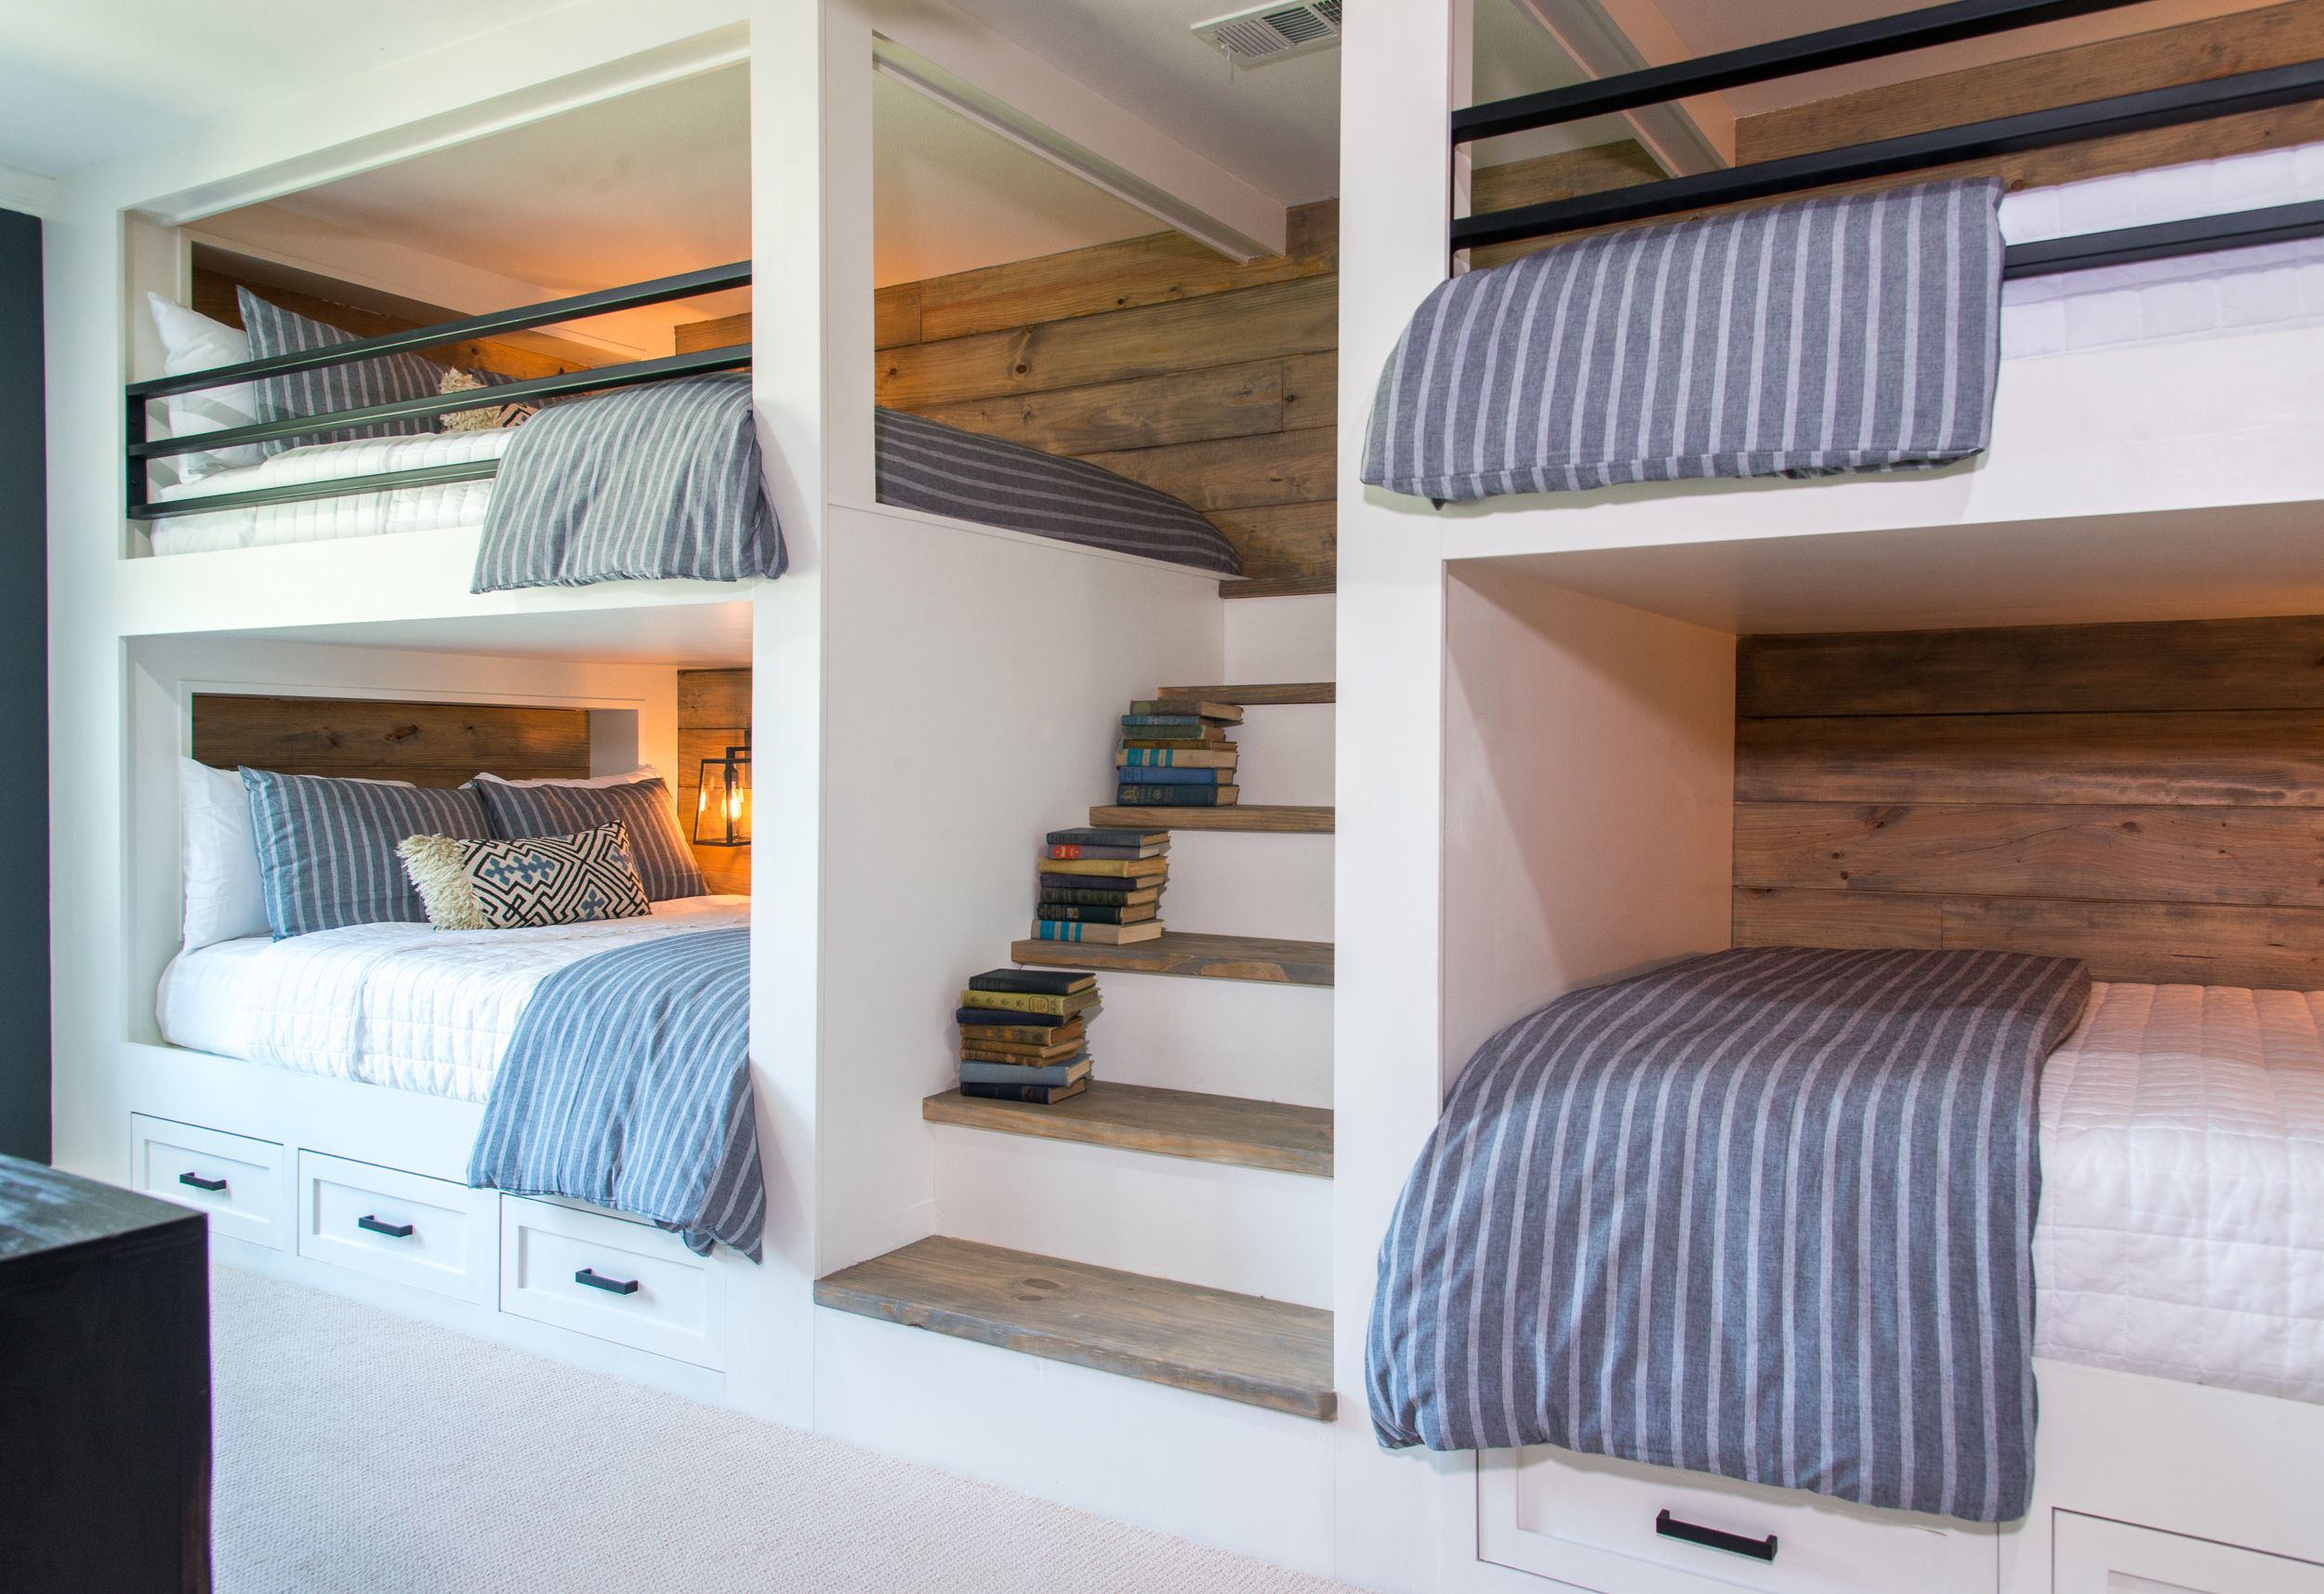 Episode 04 The Big Country House Bunk beds built in